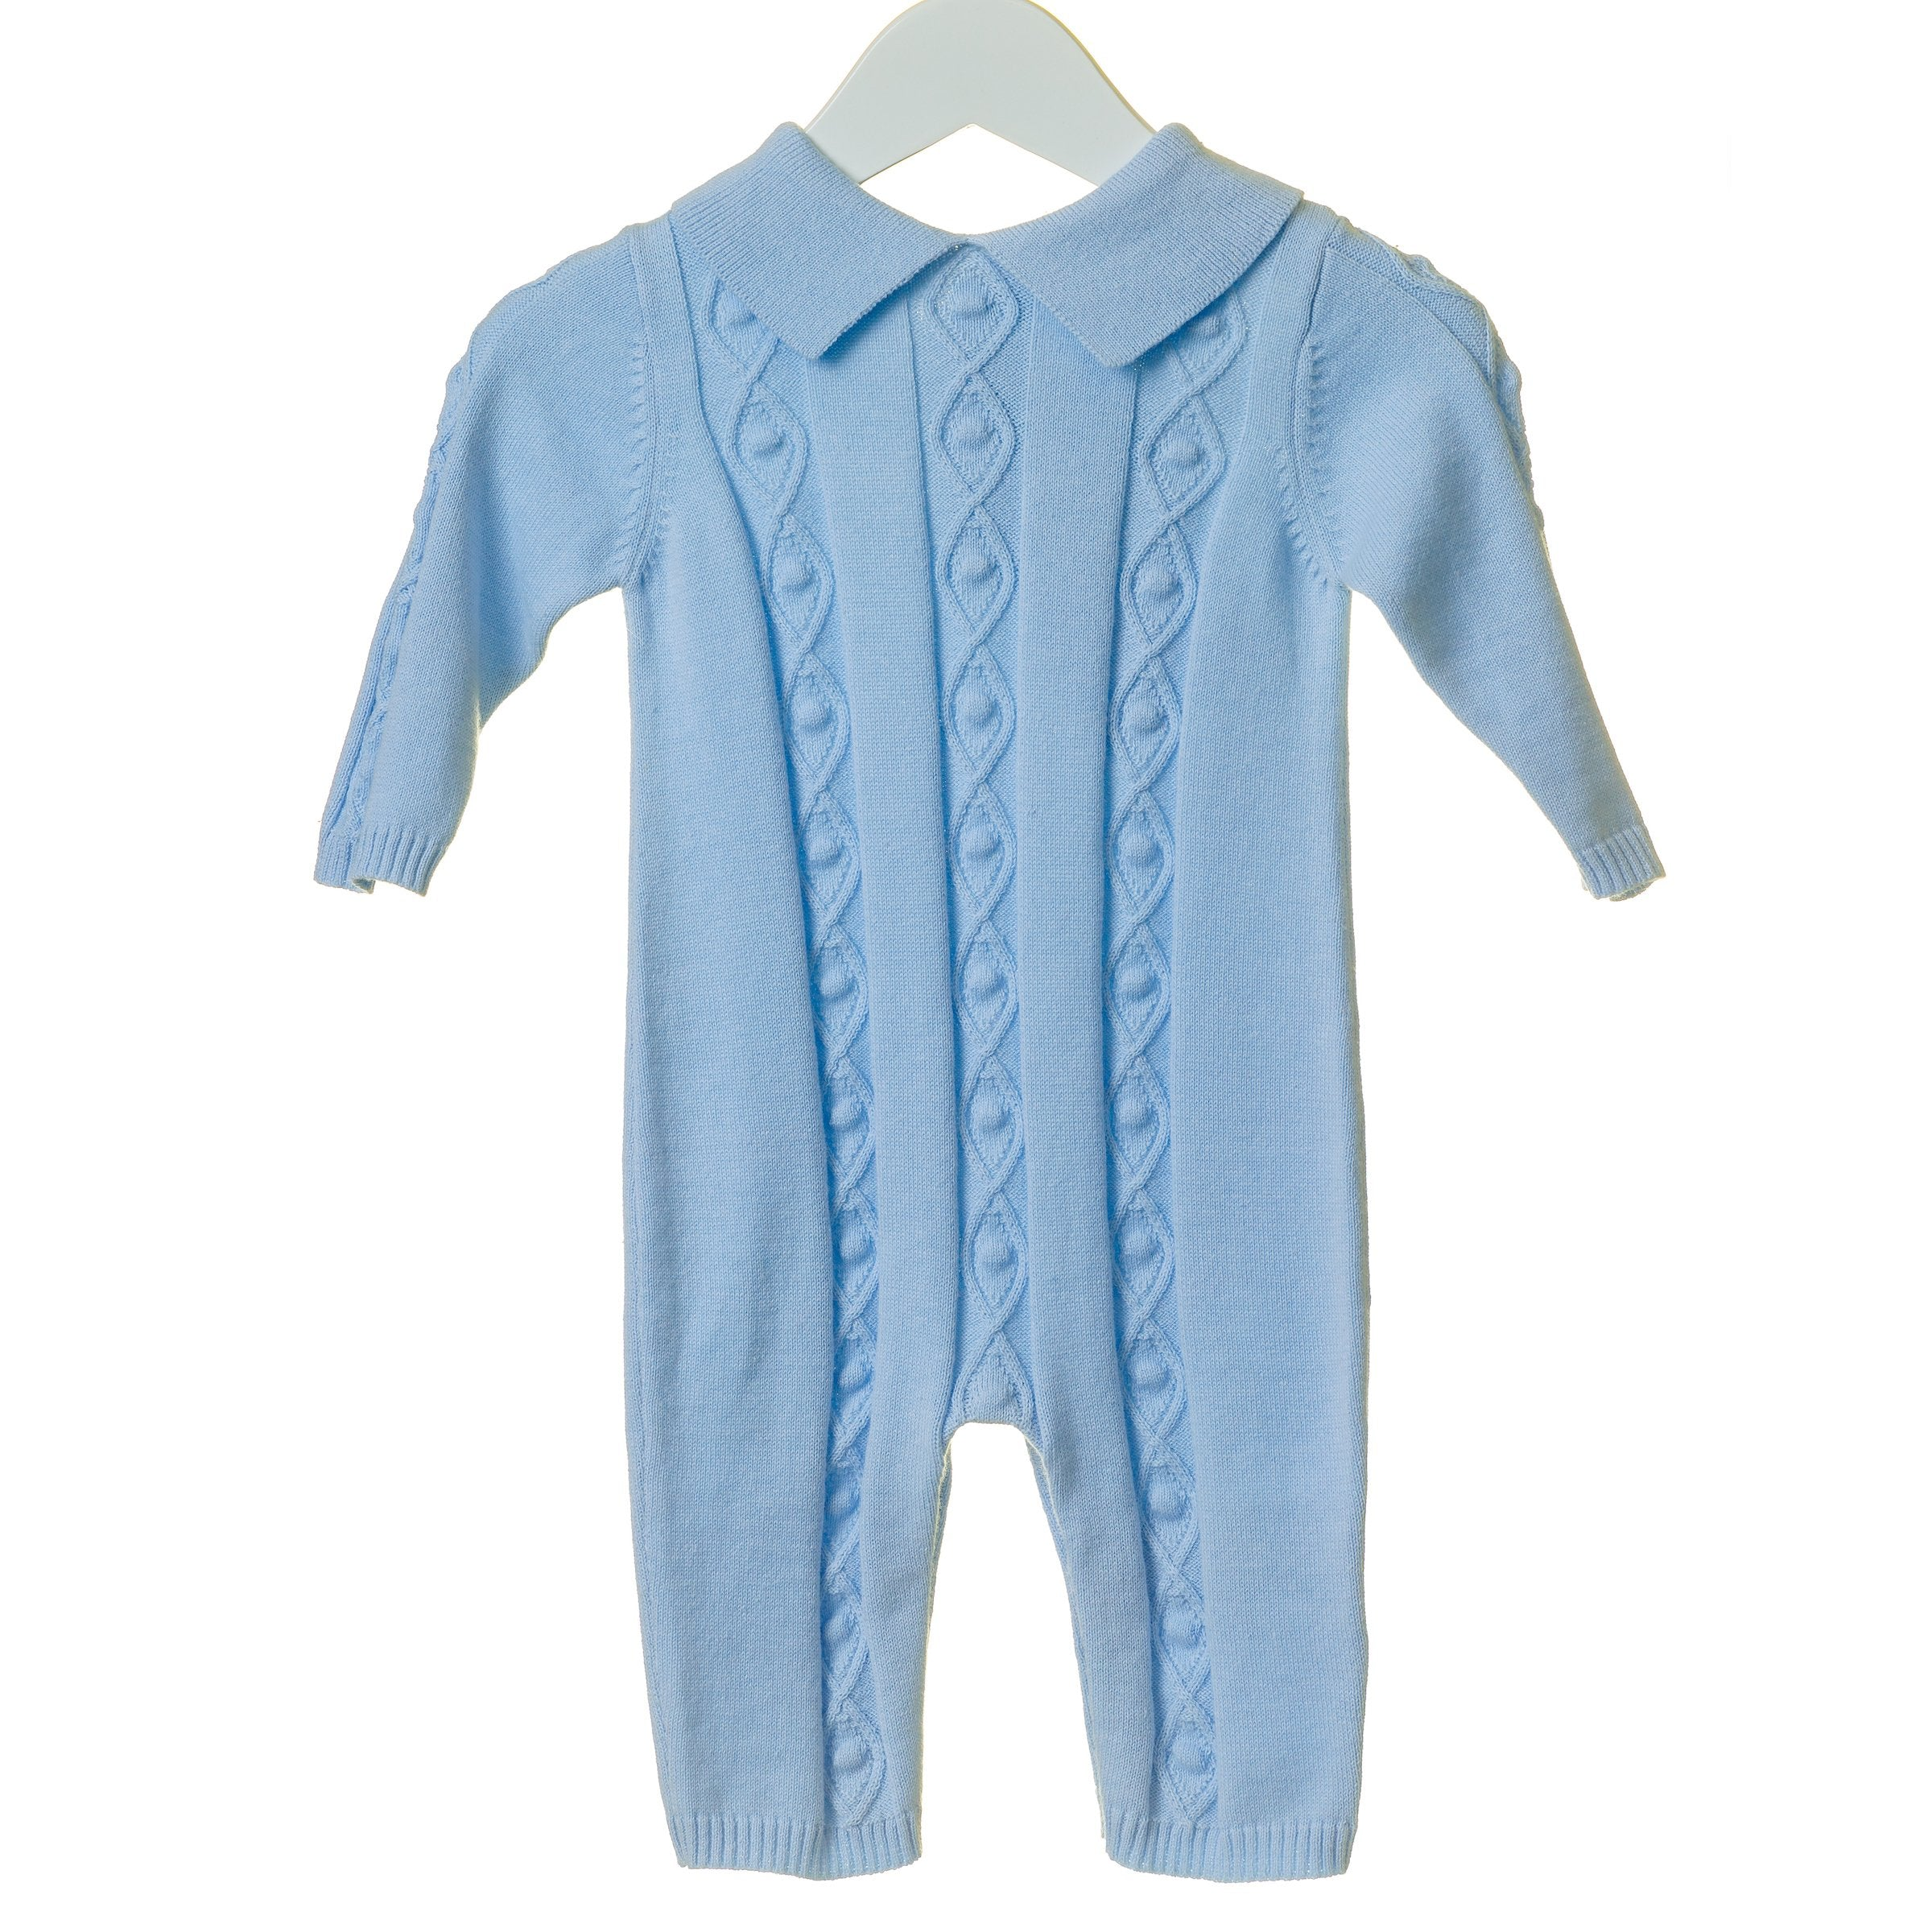 Blues Baby Knitted Diamond Romper